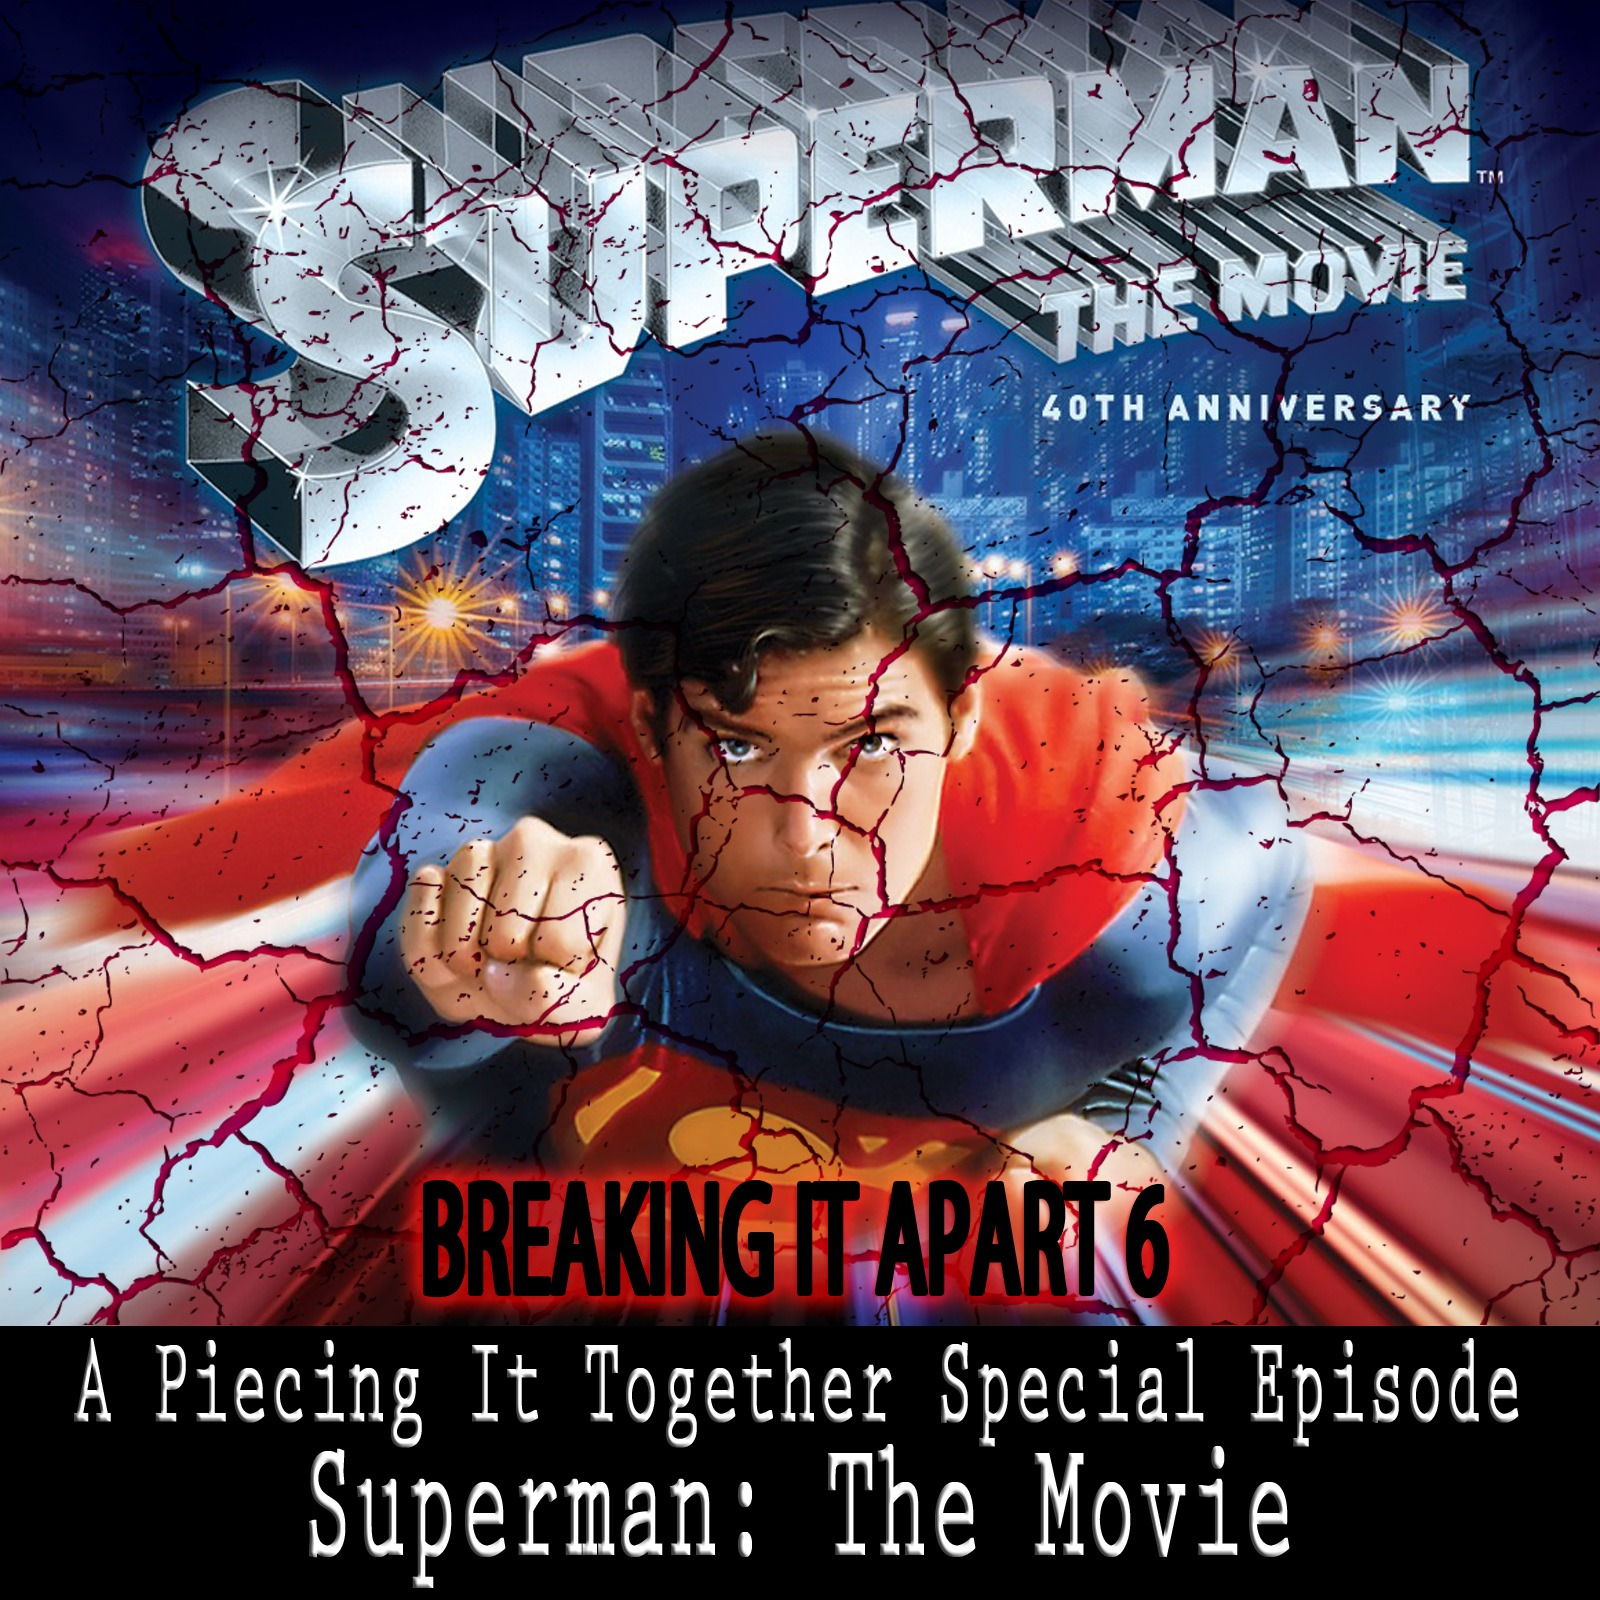 Breaking It Apart 6 – Superman: The Movie